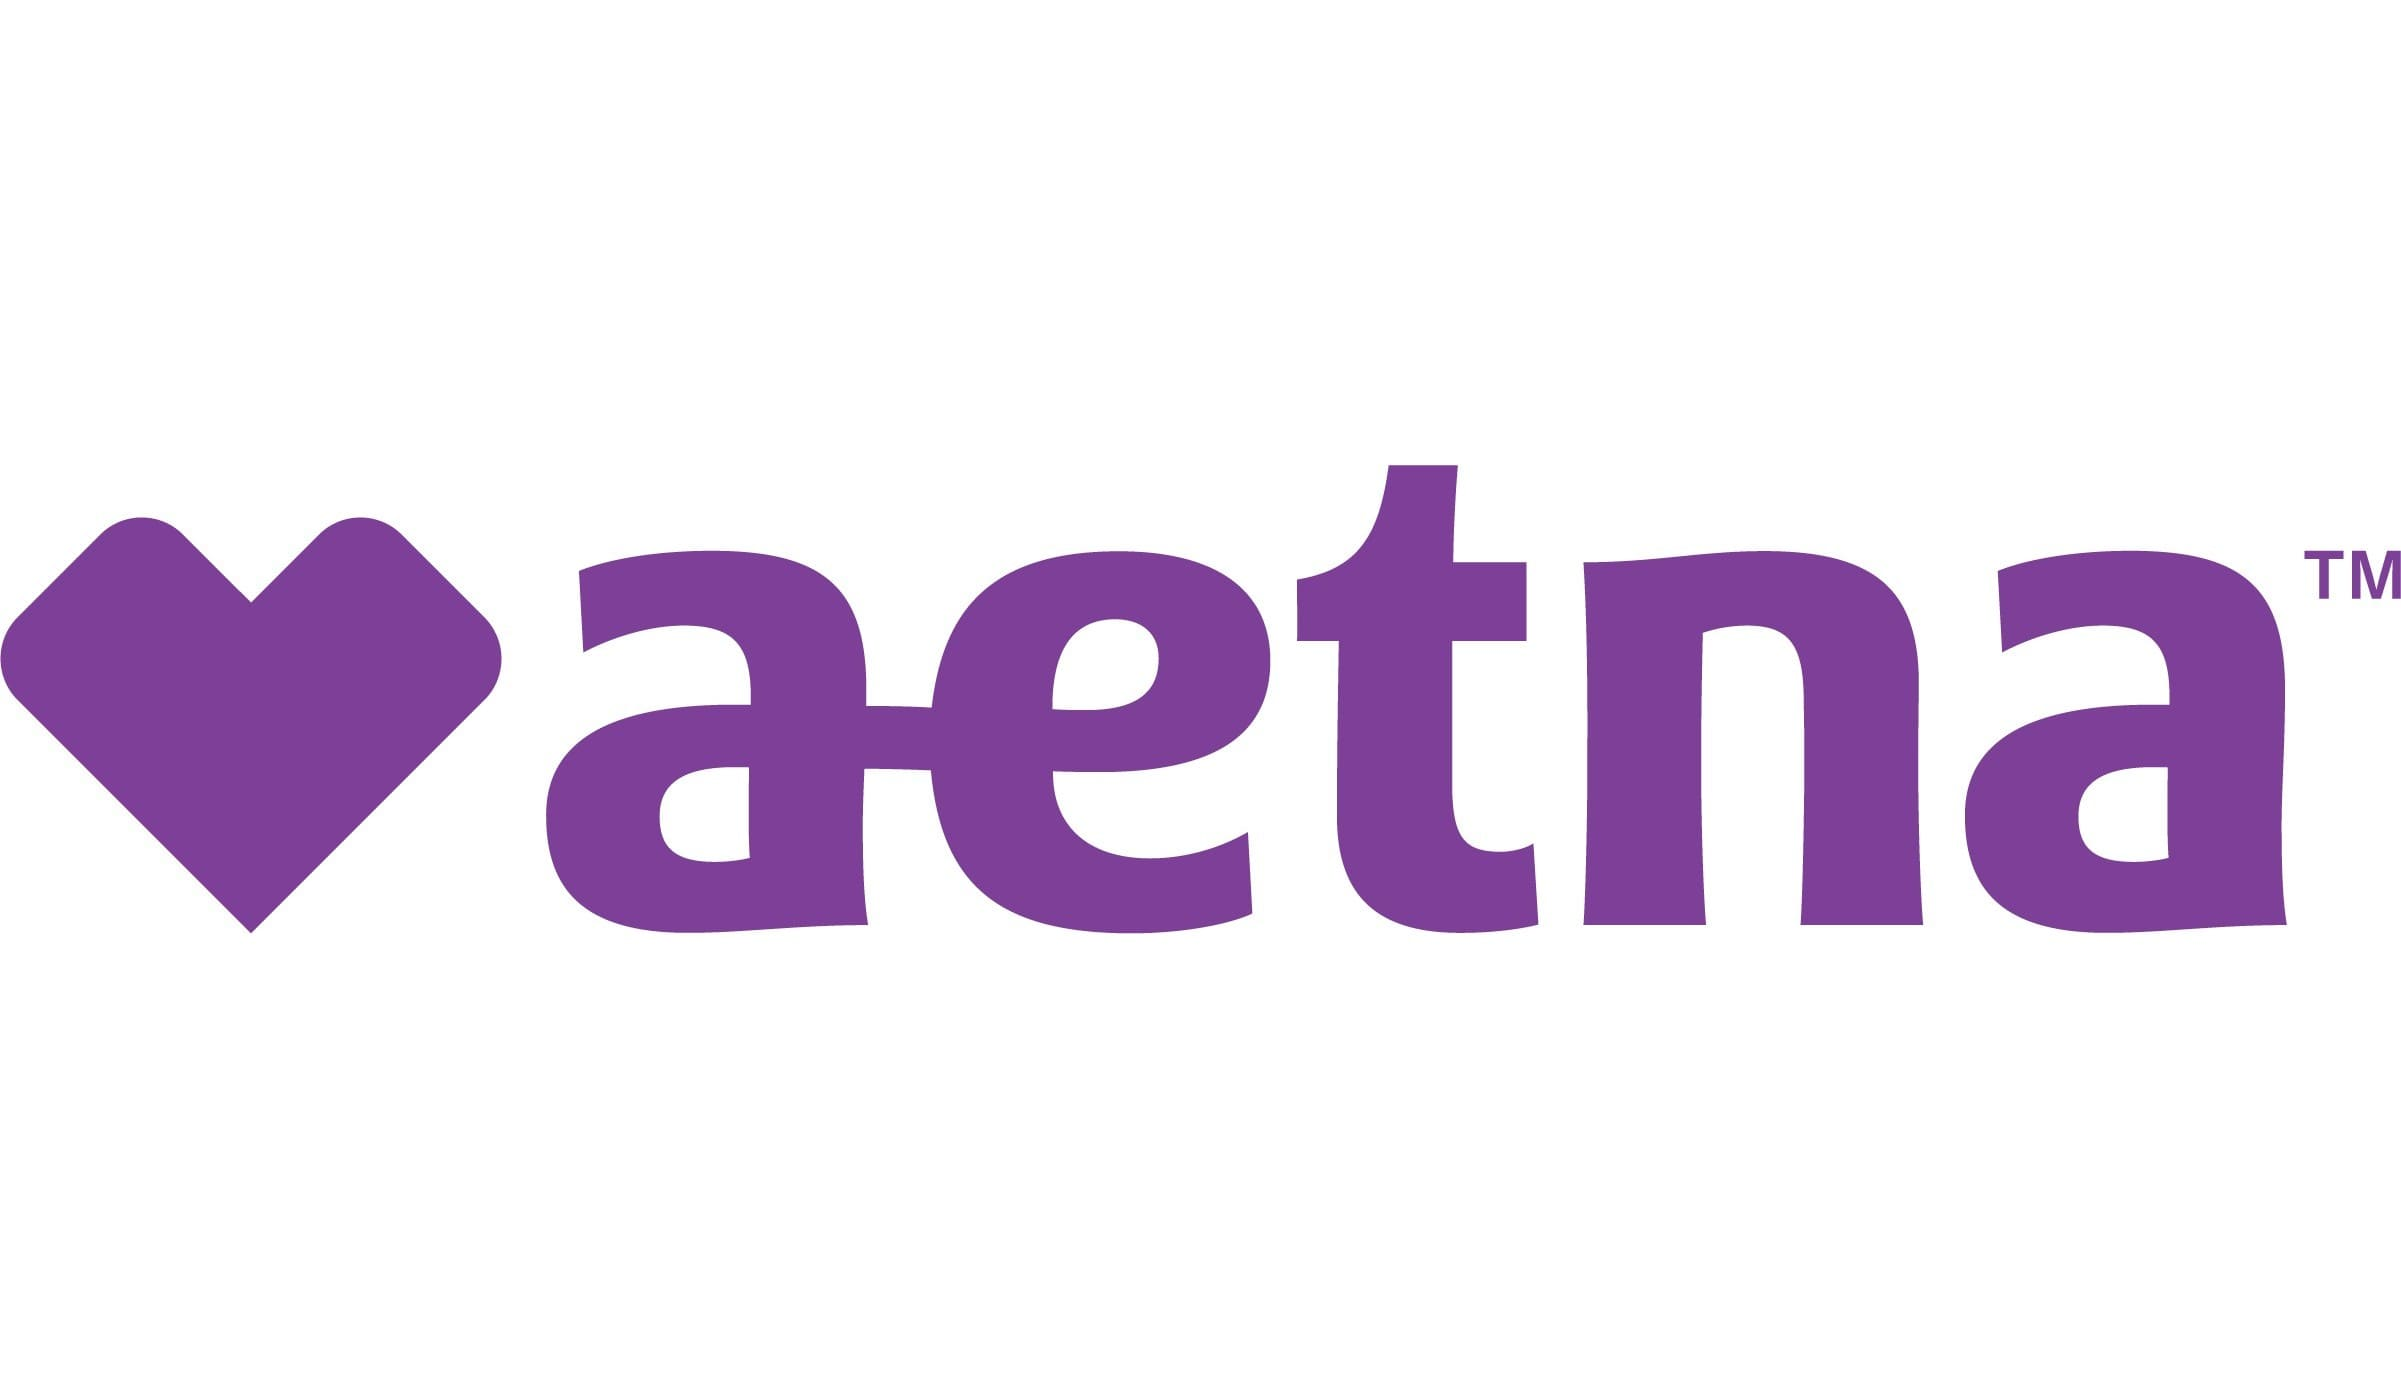 Aetna logo and symbol, meaning, history, PNG